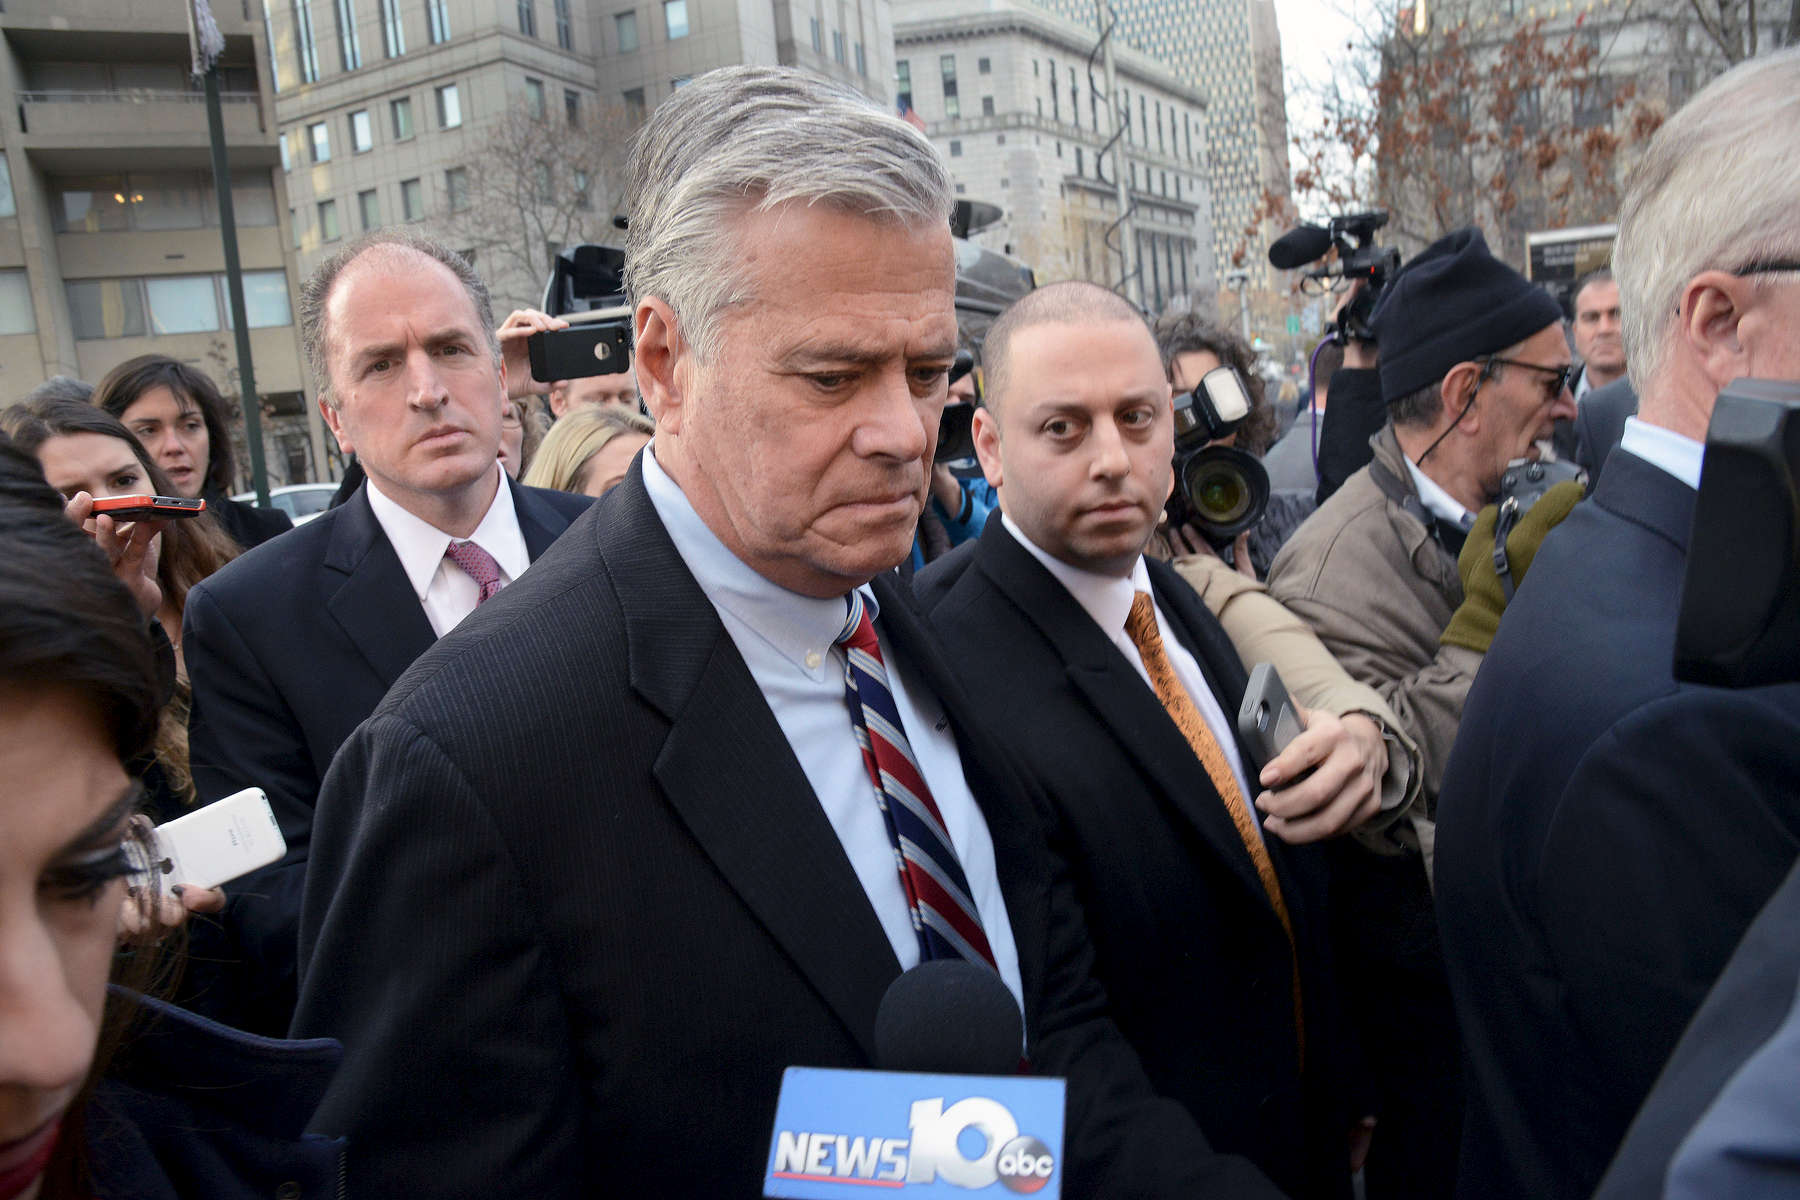 State Senator Dean Skelos and son Adam Skelos leave federal Court at 500 Pearl Street after their guilty verdicts on all charges – December, 2015